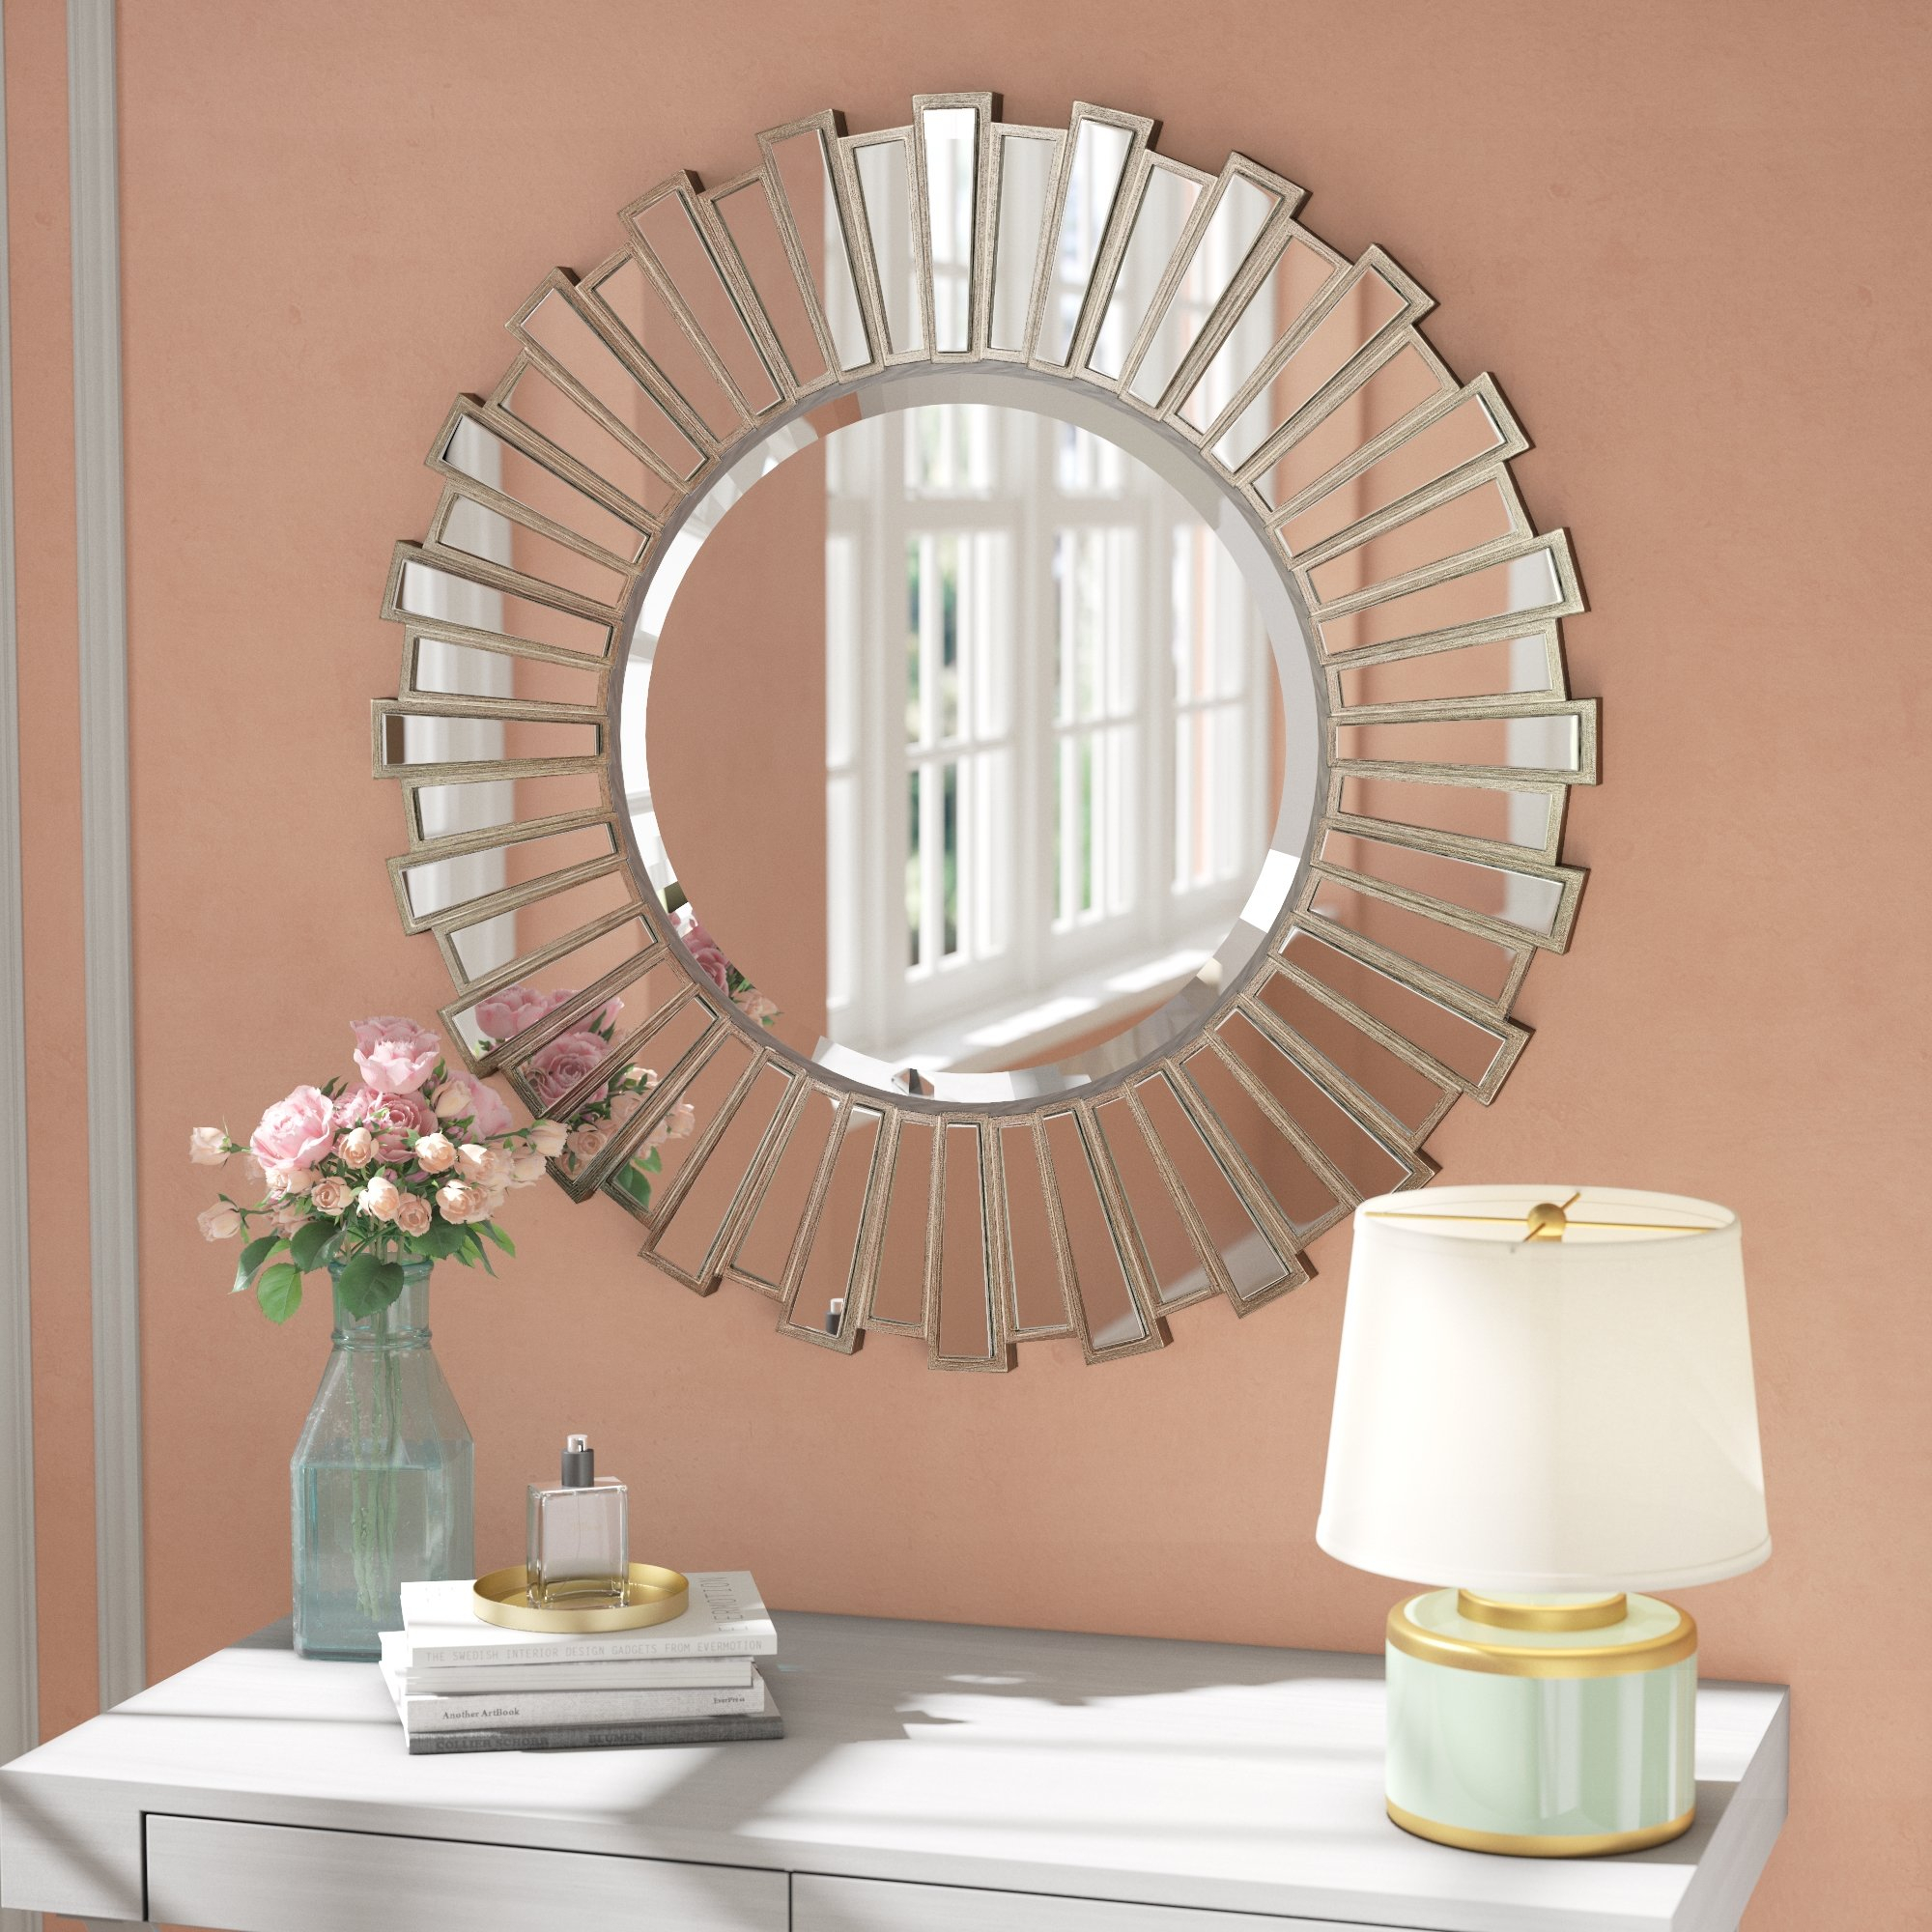 Wegman Accent Wall Mirror | Wayfair (View 3 of 20)